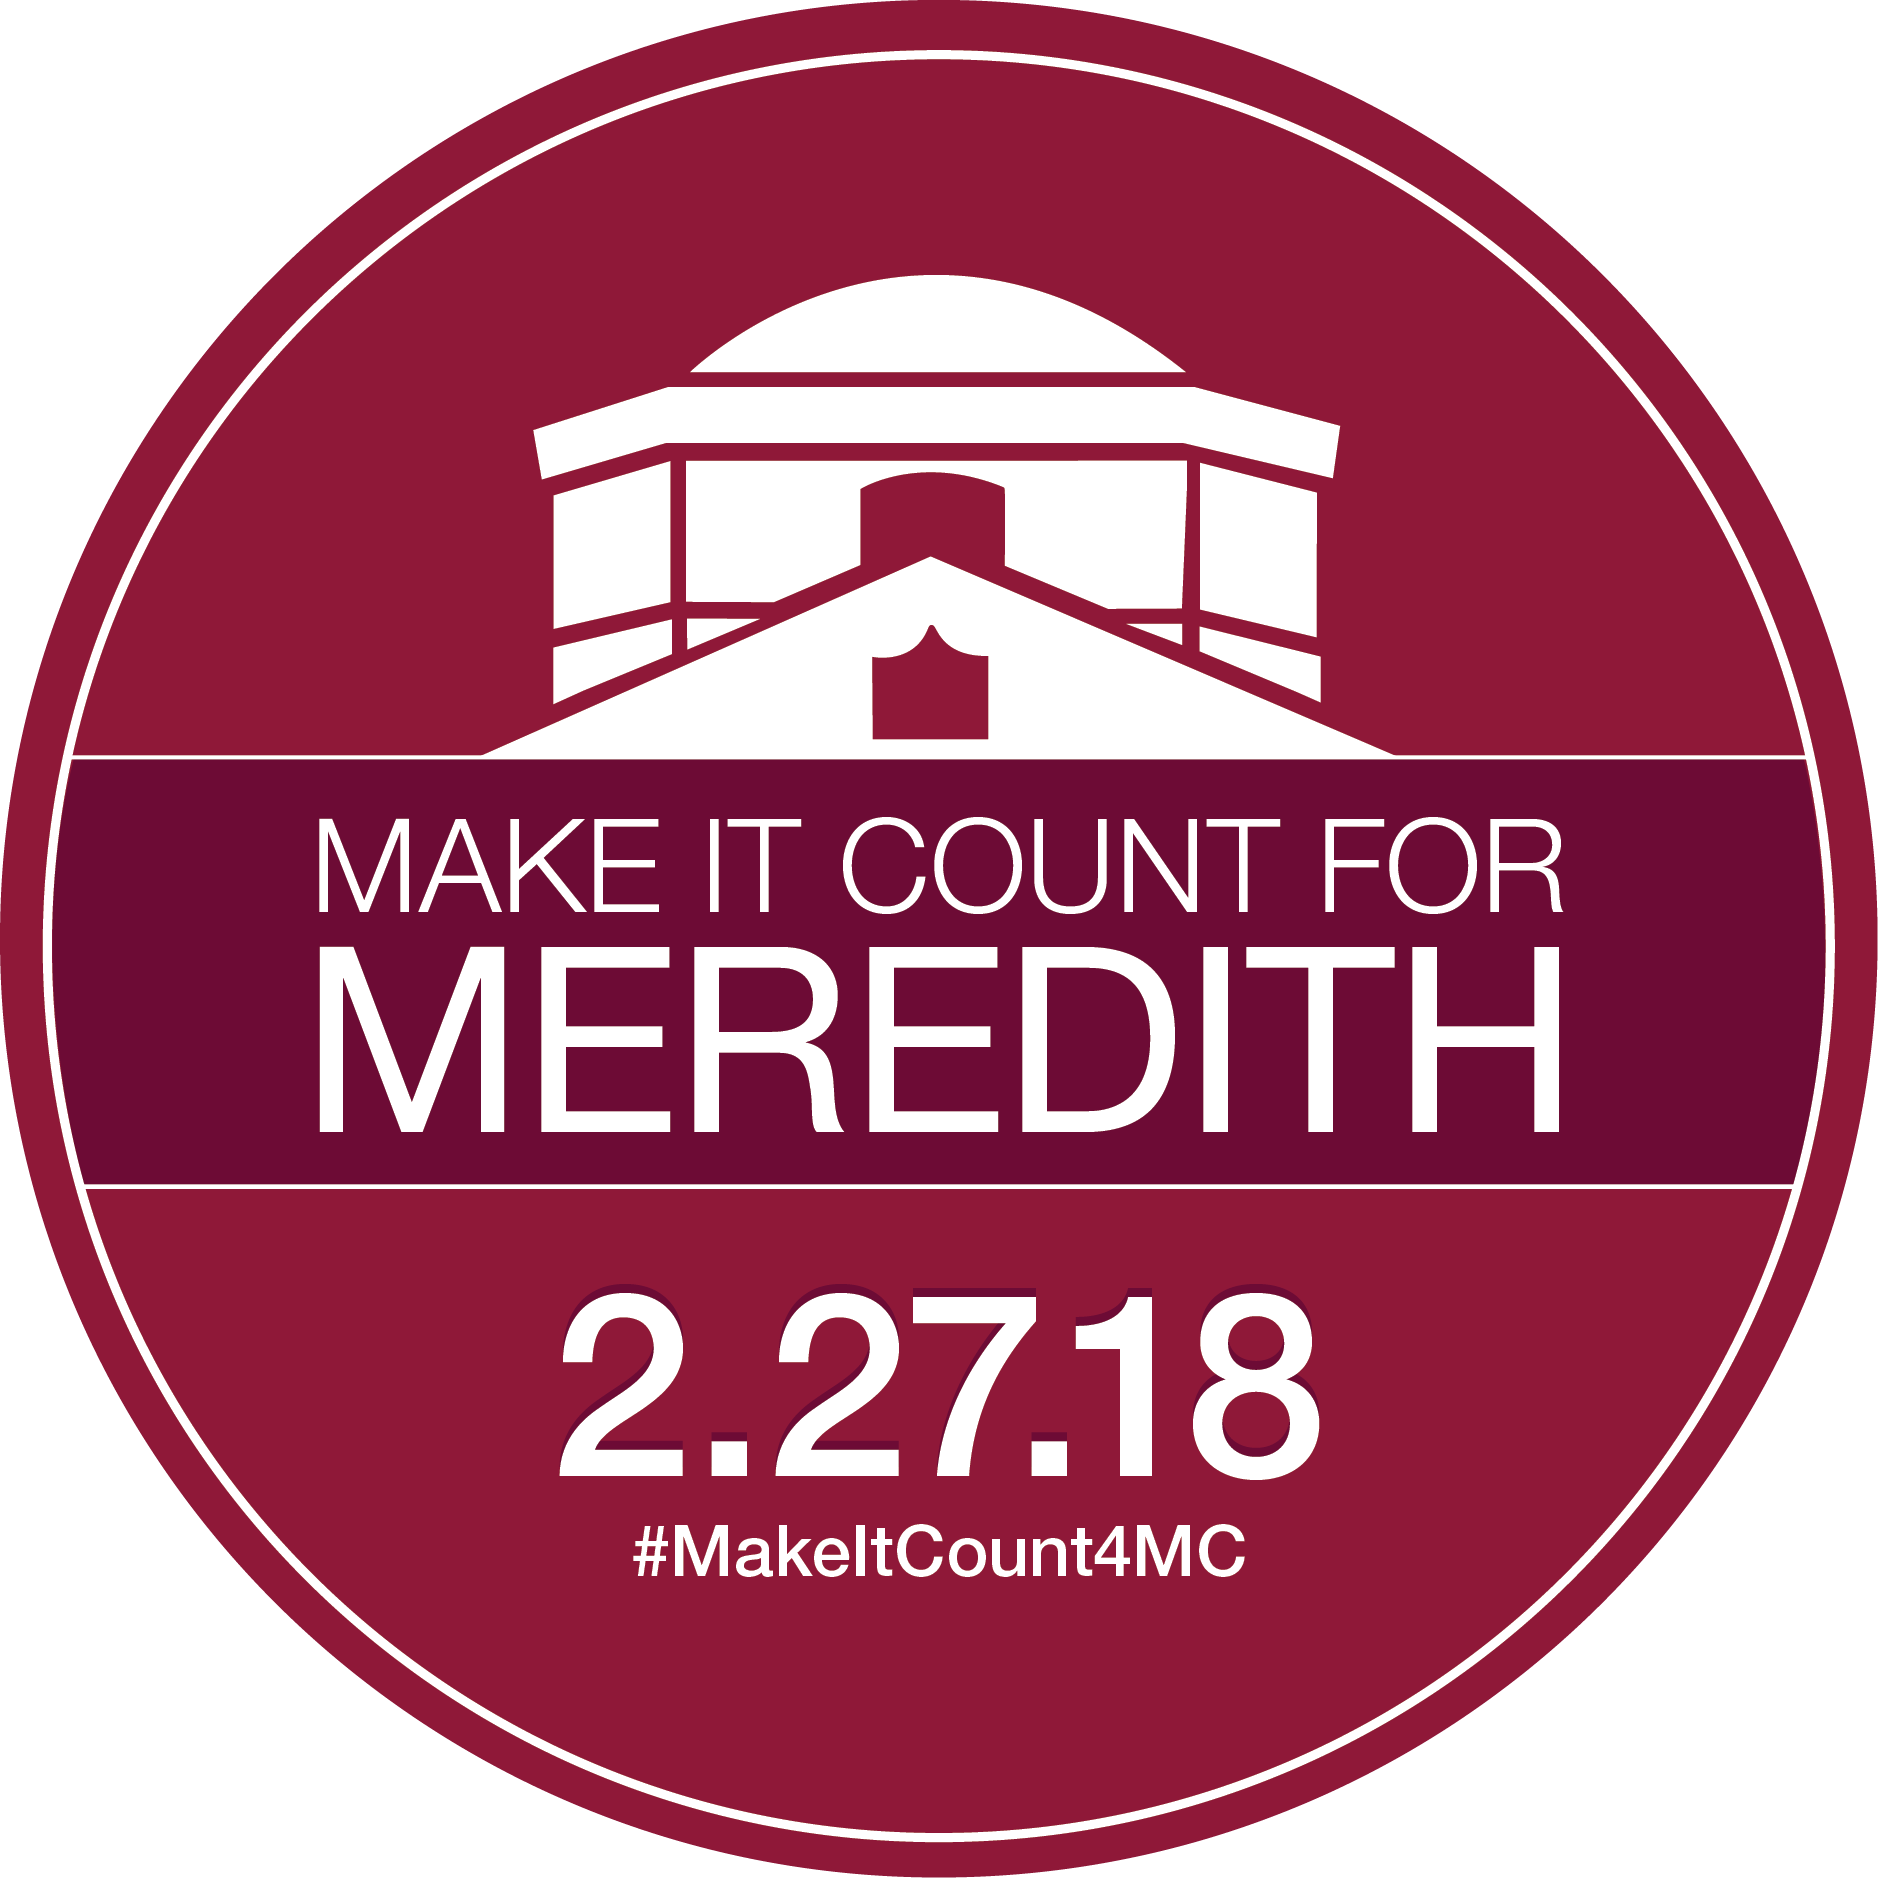 Make It Count For Meredith February 27 2018